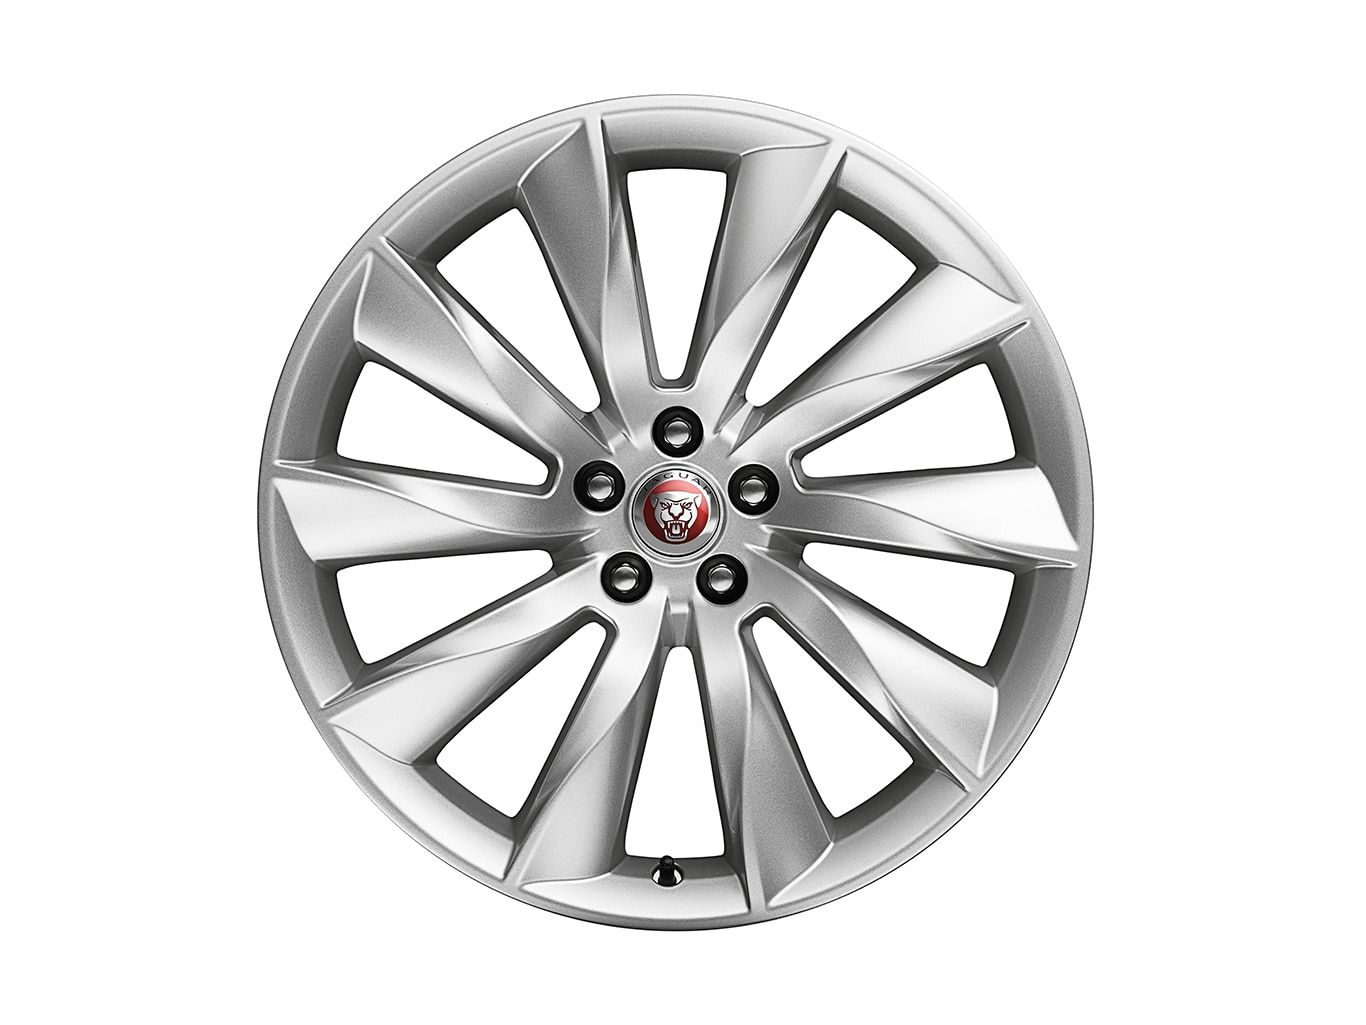 "Alloy Wheel - 20"" Style 1025, 10 spoke, Rear"